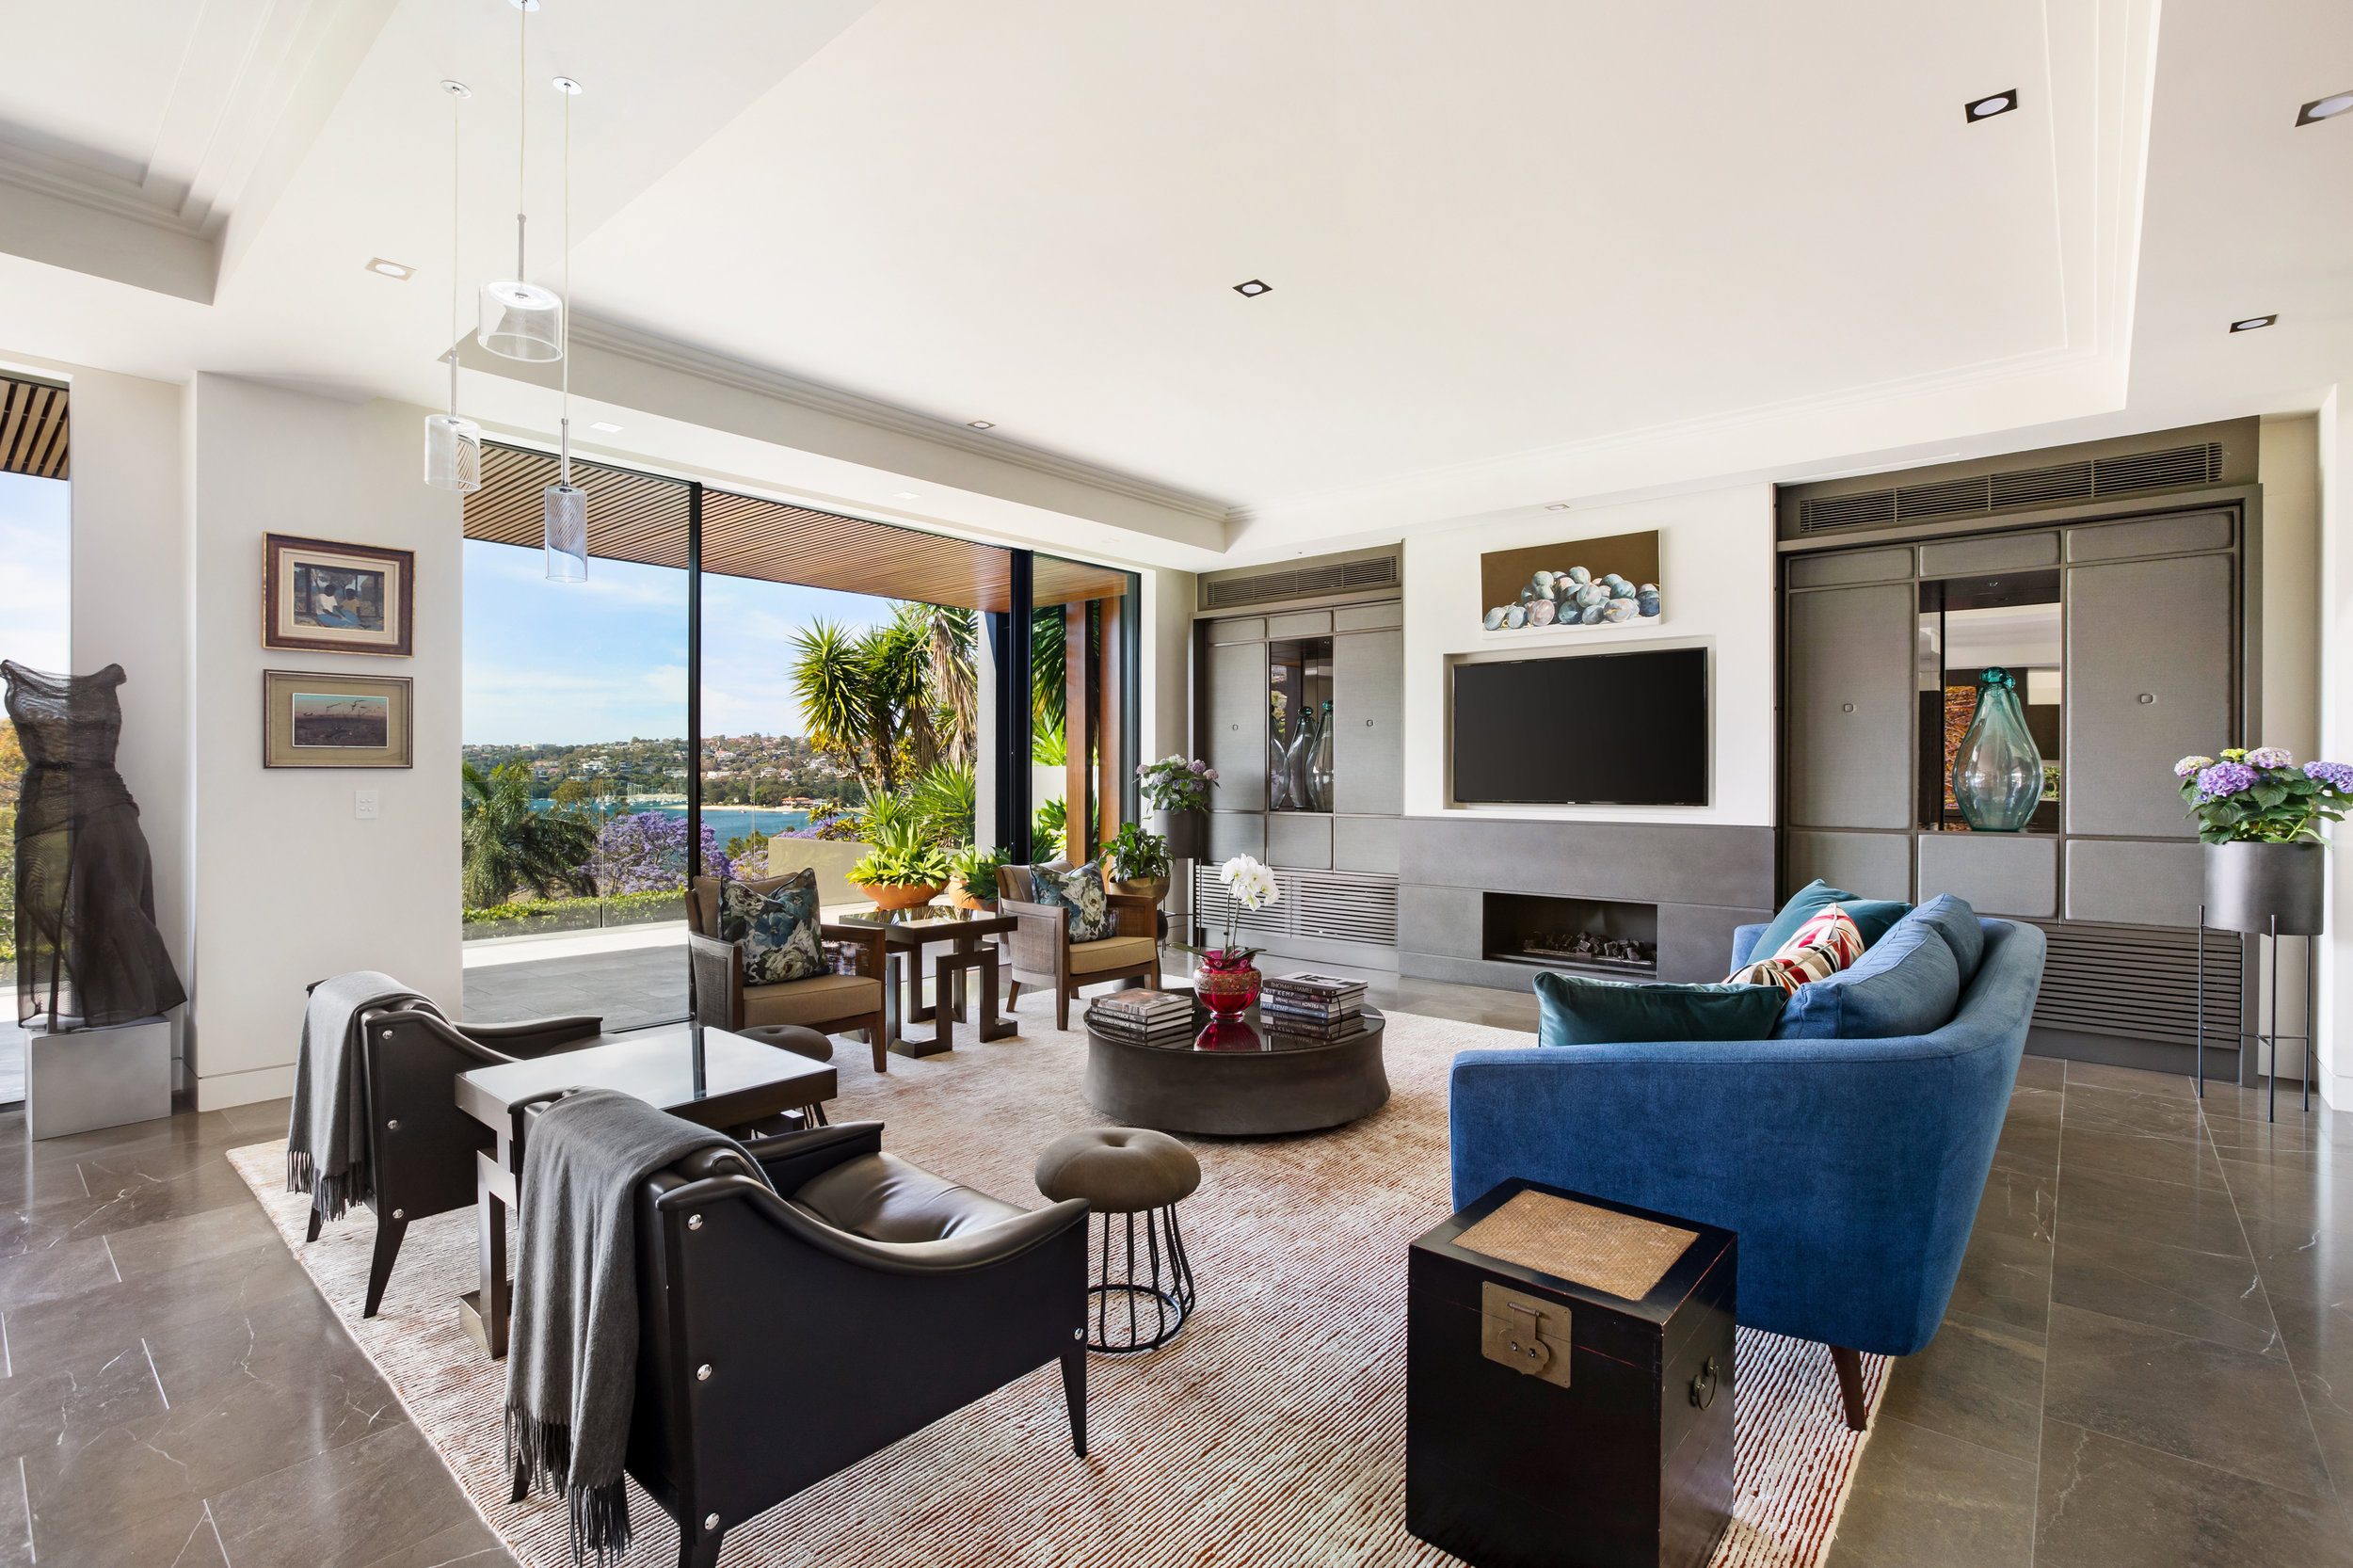 Hopetoun-Ave-25-Mosman-Living.jpg